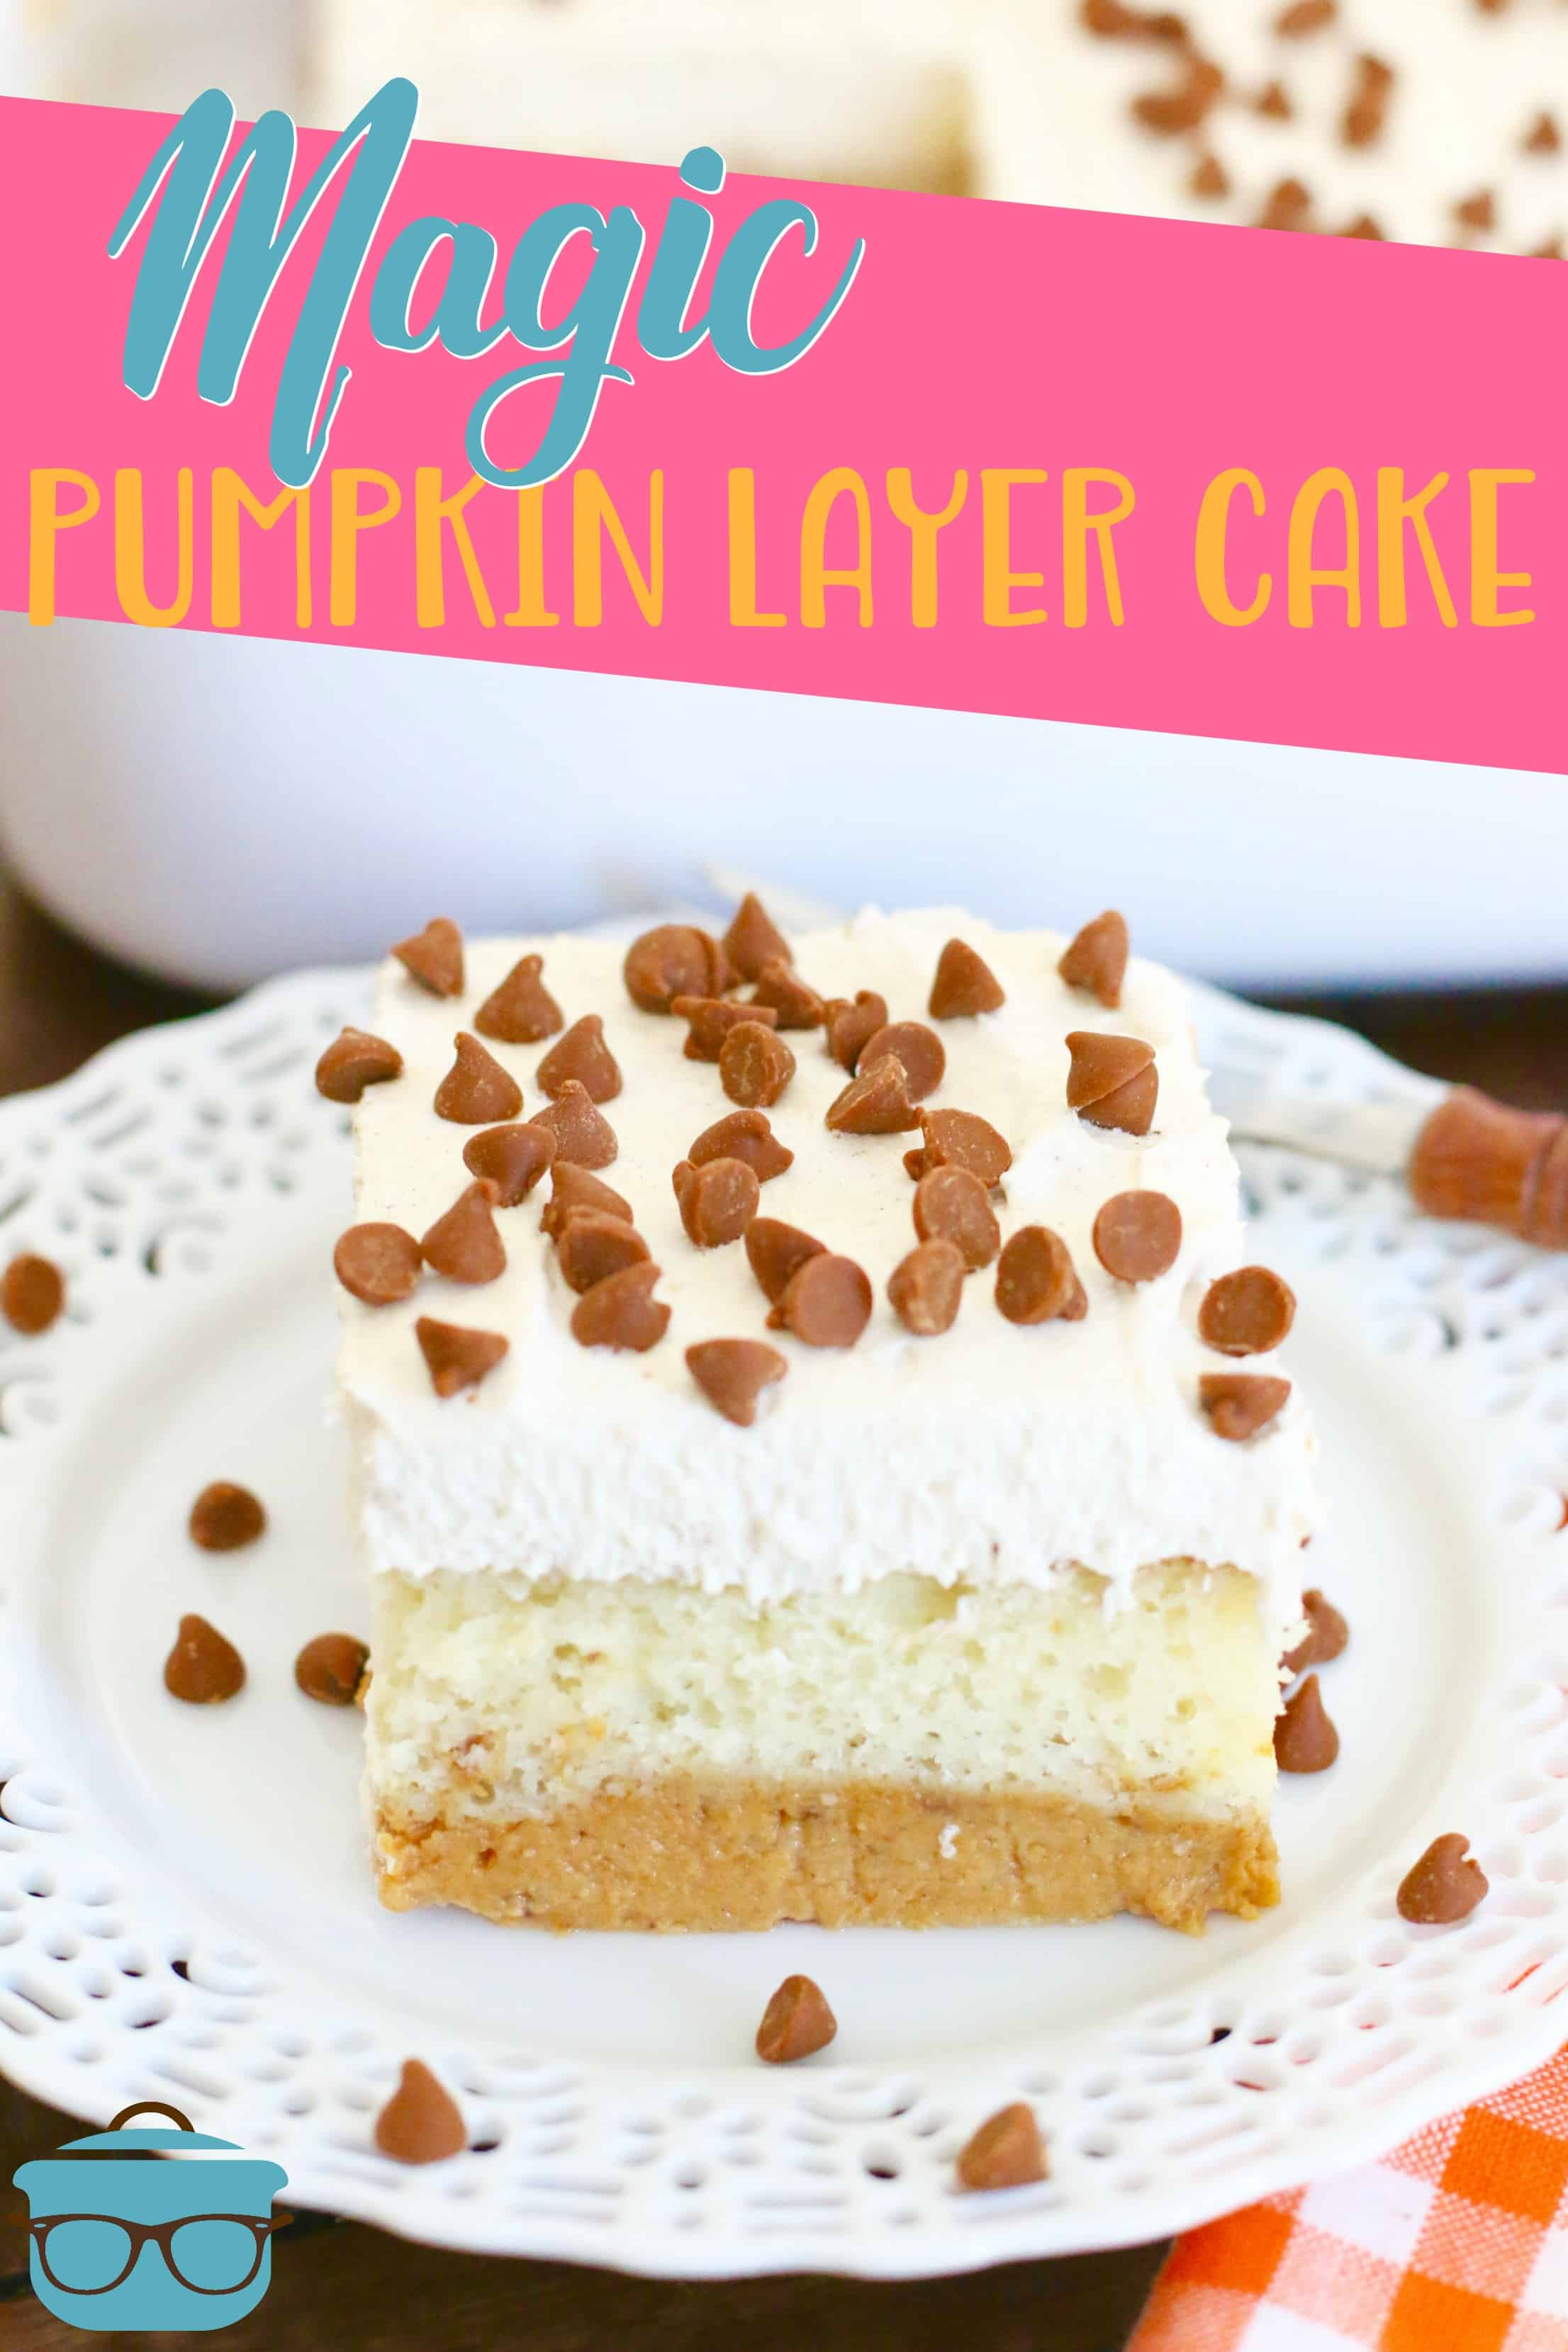 Magic Pumpkin Layer Cake is vanilla cake on the bottom with pumpkin pie filling layered on top and finished with cinnamon whipped topping. #pumpkincake #dessert